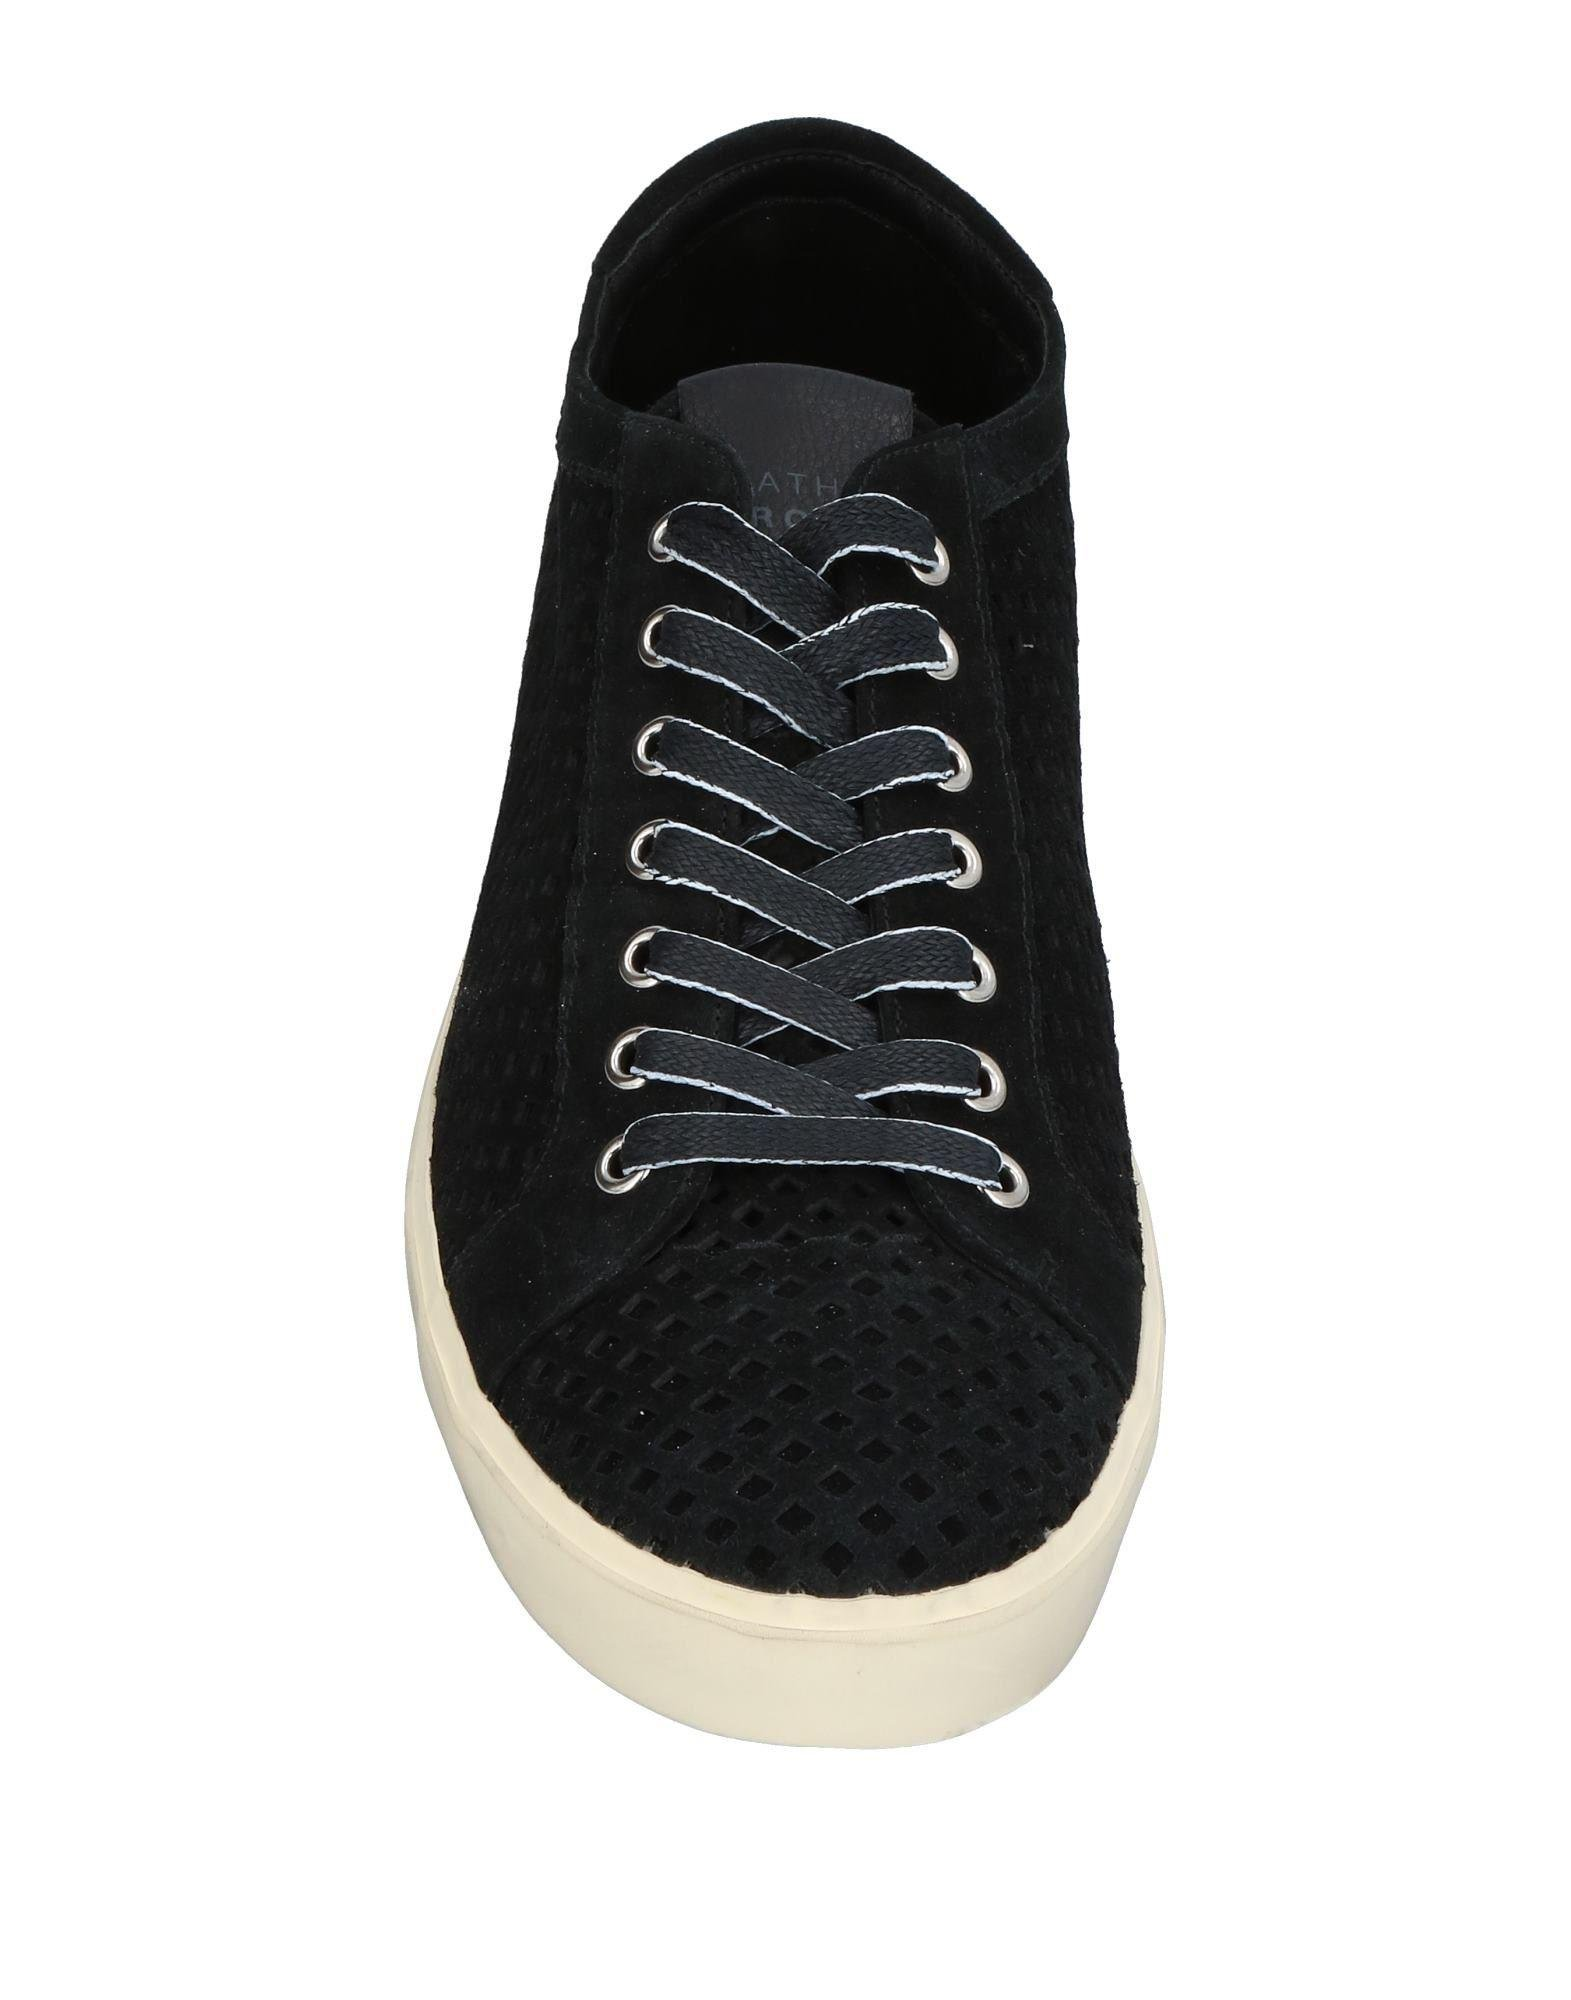 Leather Crown Suede Low-tops & Sneakers in Black for Men